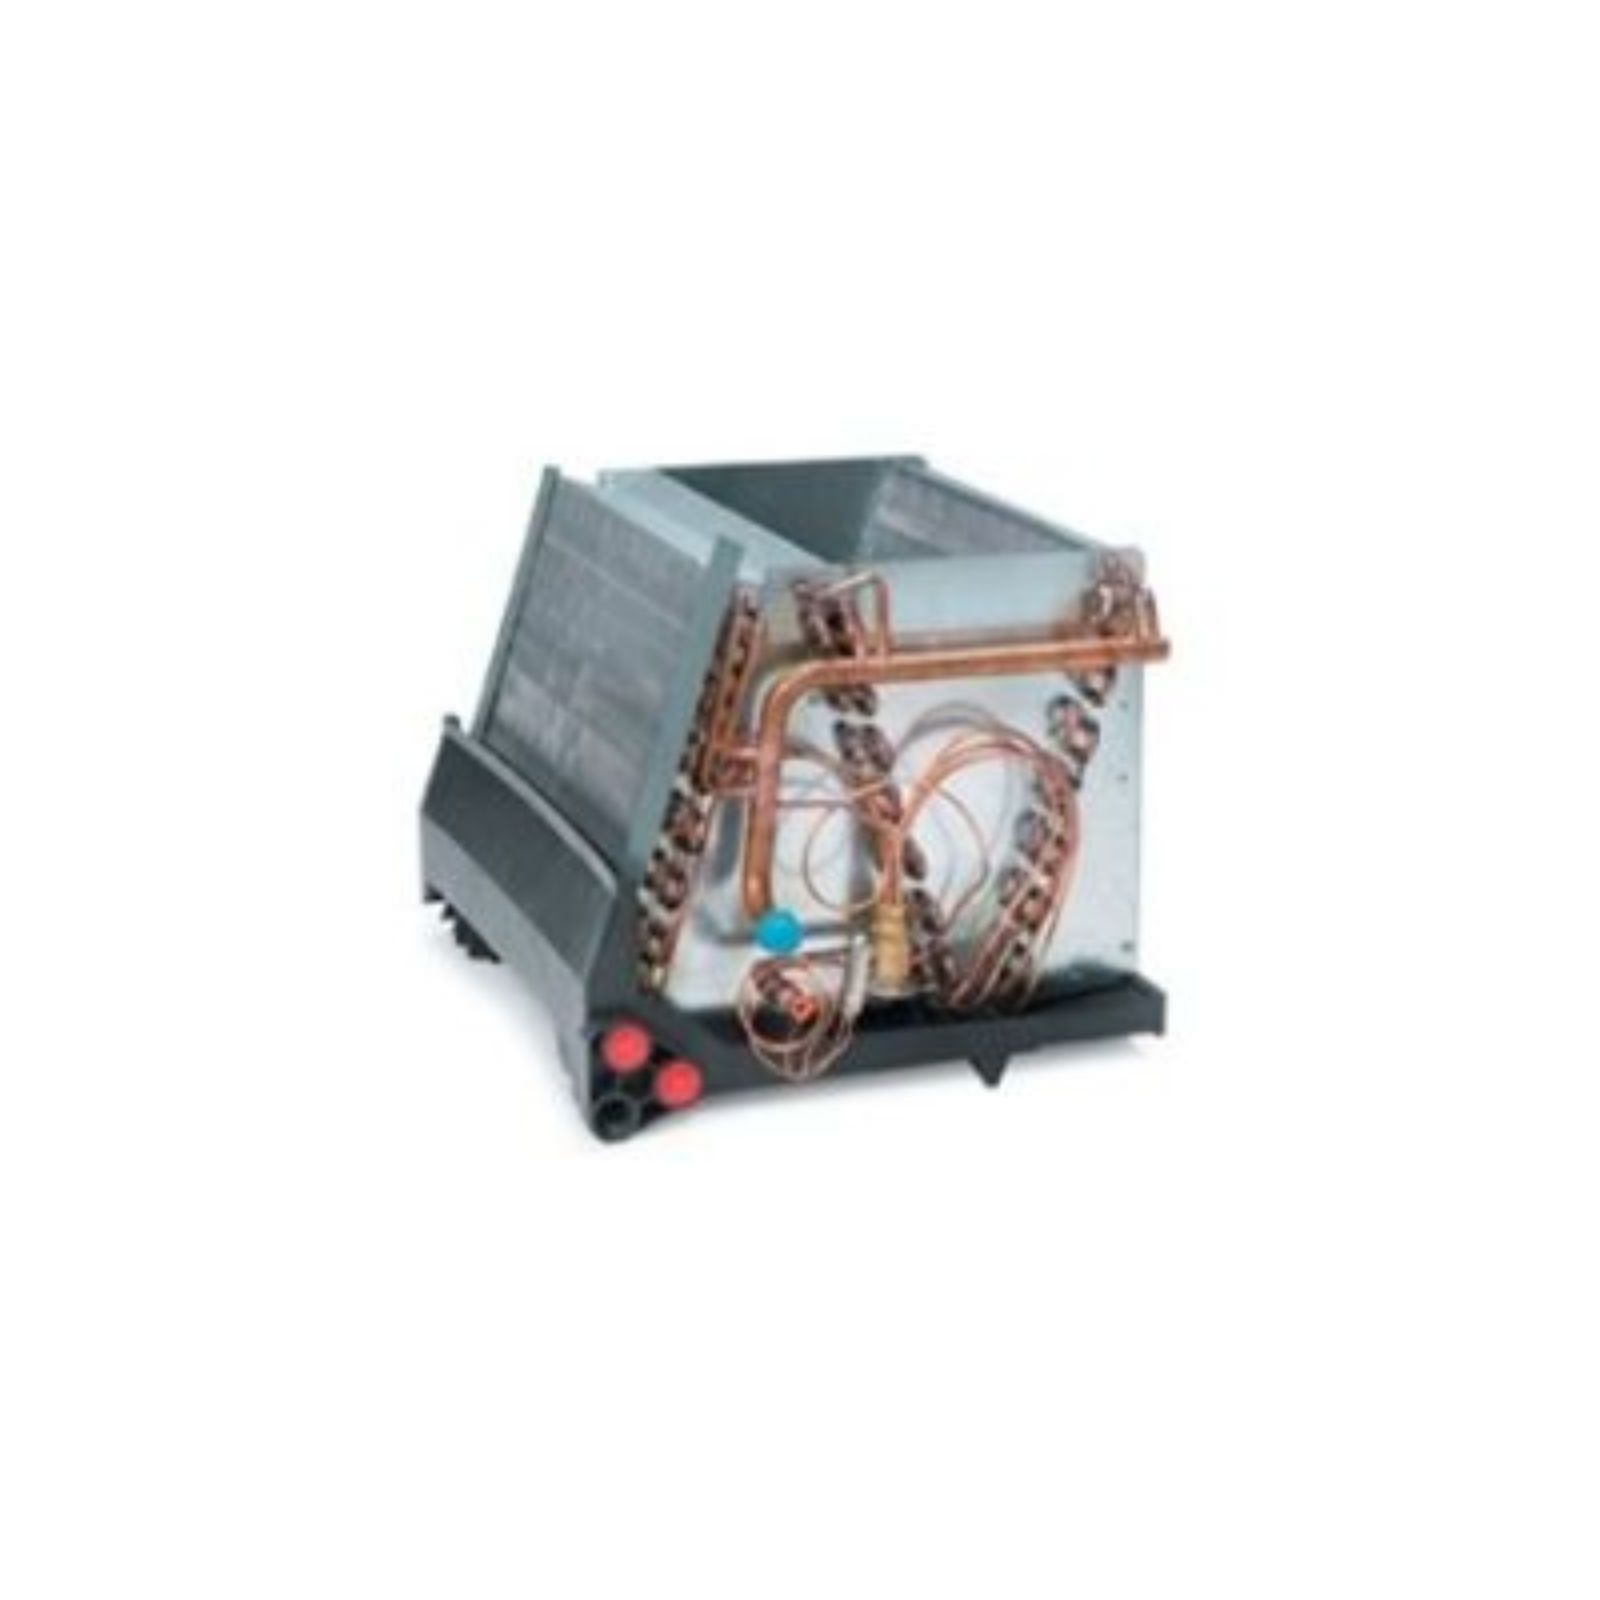 "Rheem RCSM-HU4824AU - 4 Ton 16 SEER 24"" Replacement Upflow/Downflow Uncased Coil - R410A for use in HPL Air Handlers"